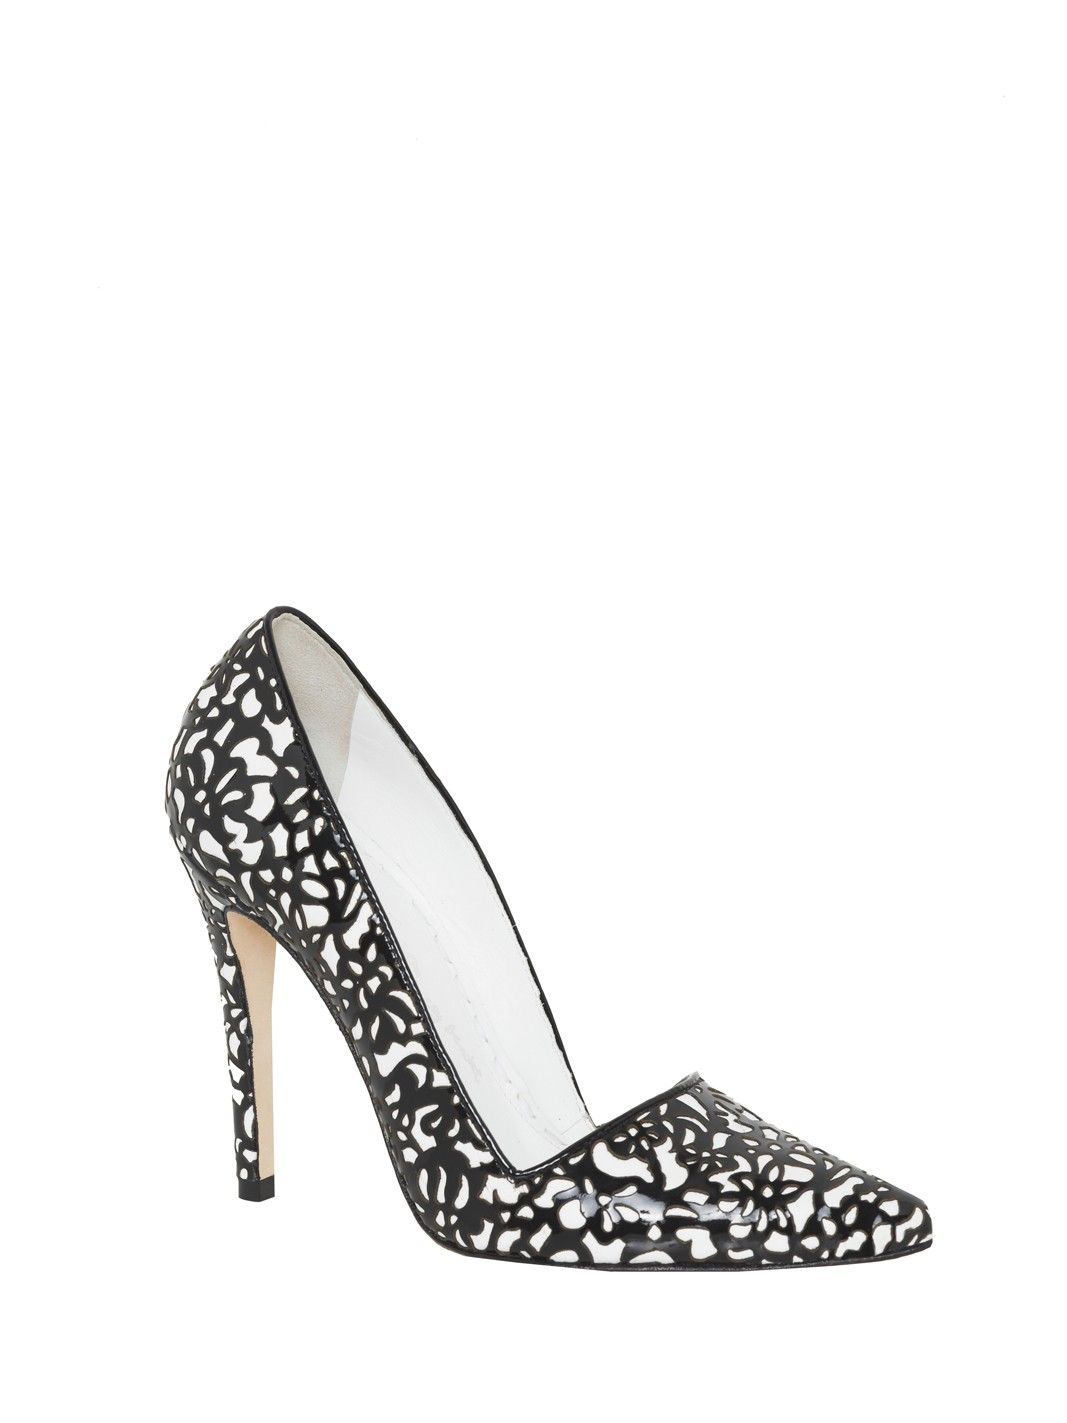 DINA LACE LASER CUT SMOOTH PATENT HEEL